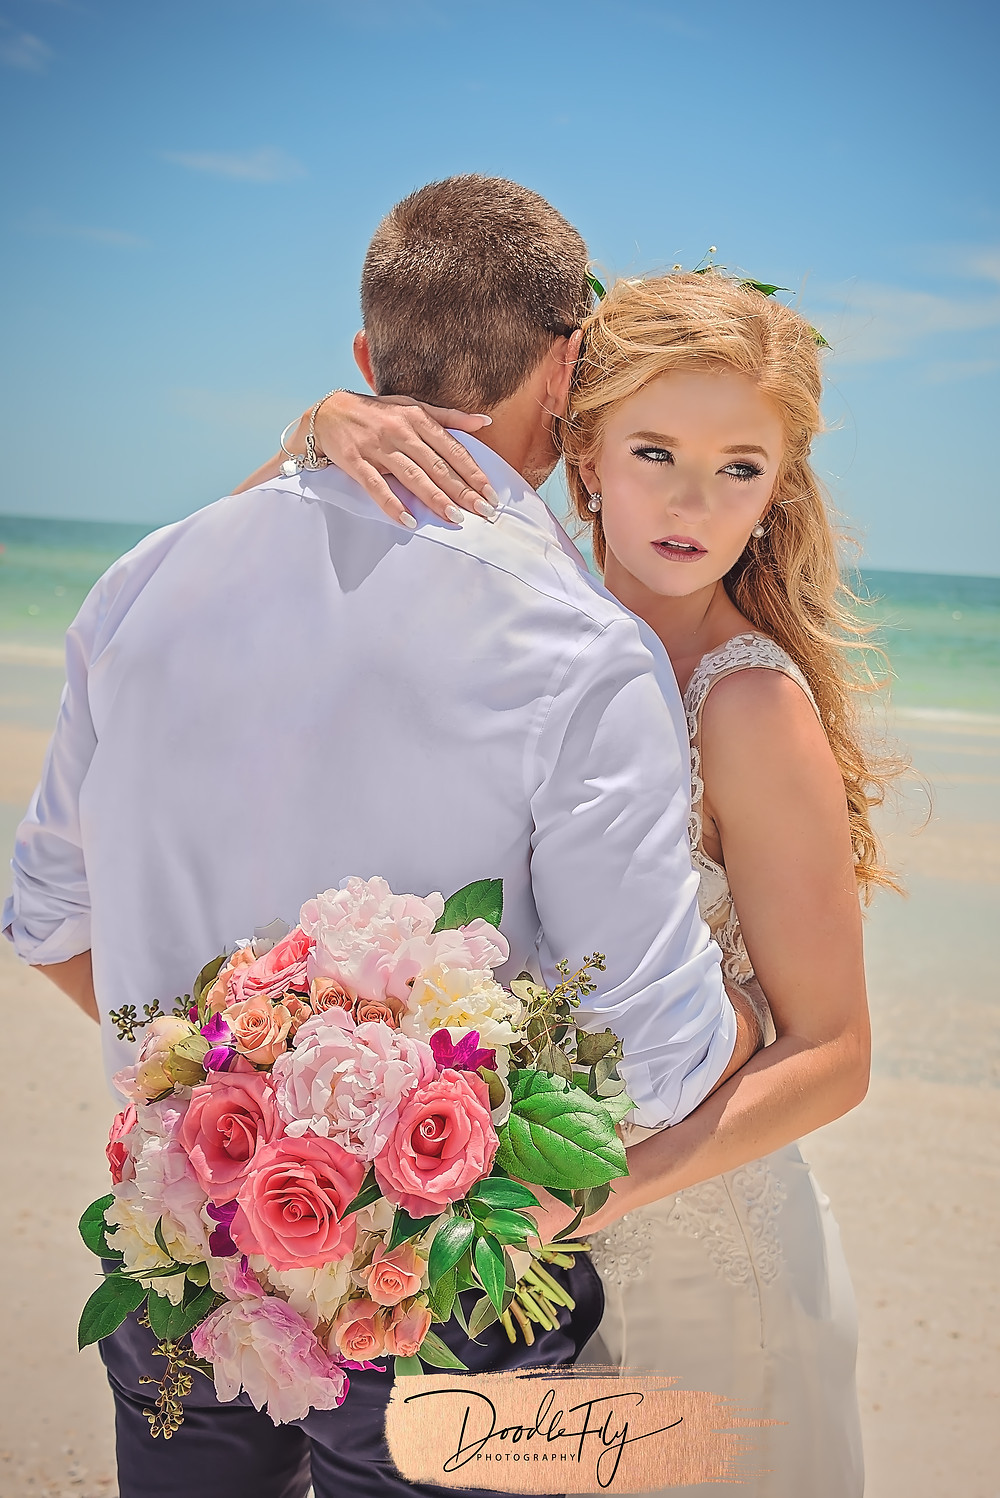 Bride & Groom Portrait, Beach Wedding,  by Doodle Fly Photography